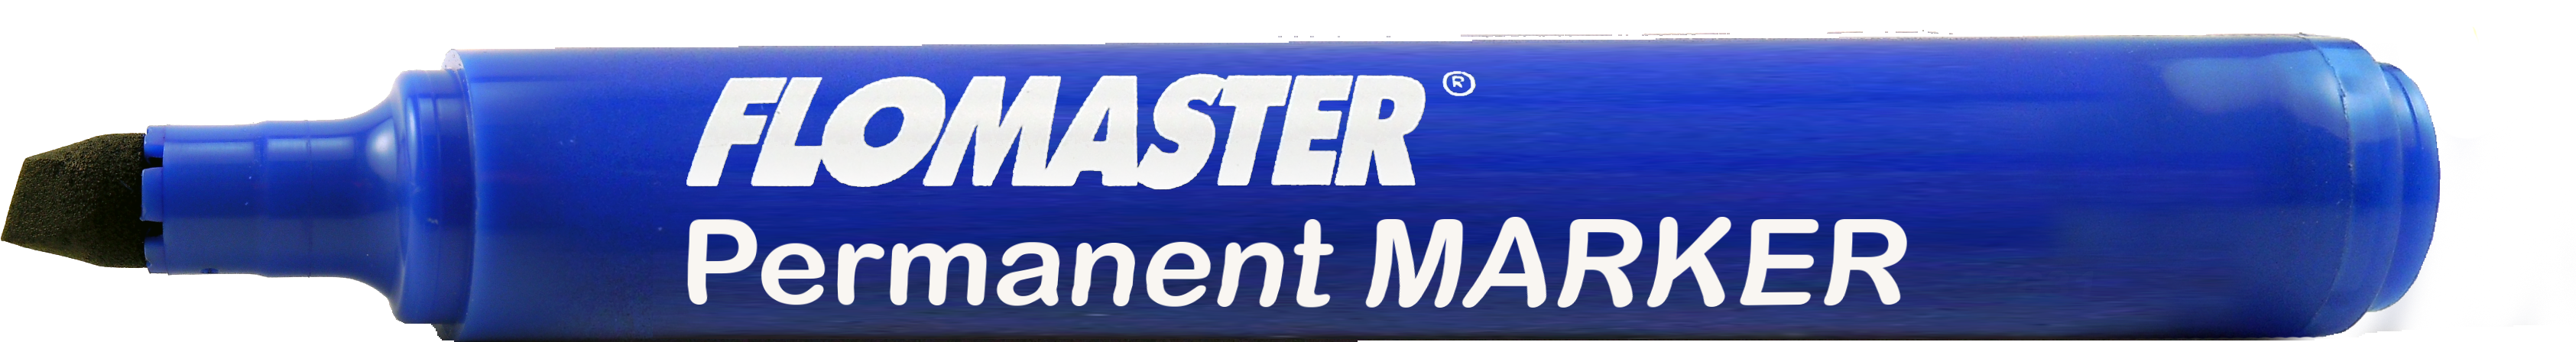 Flomaster Capillary Action Permanent Markers